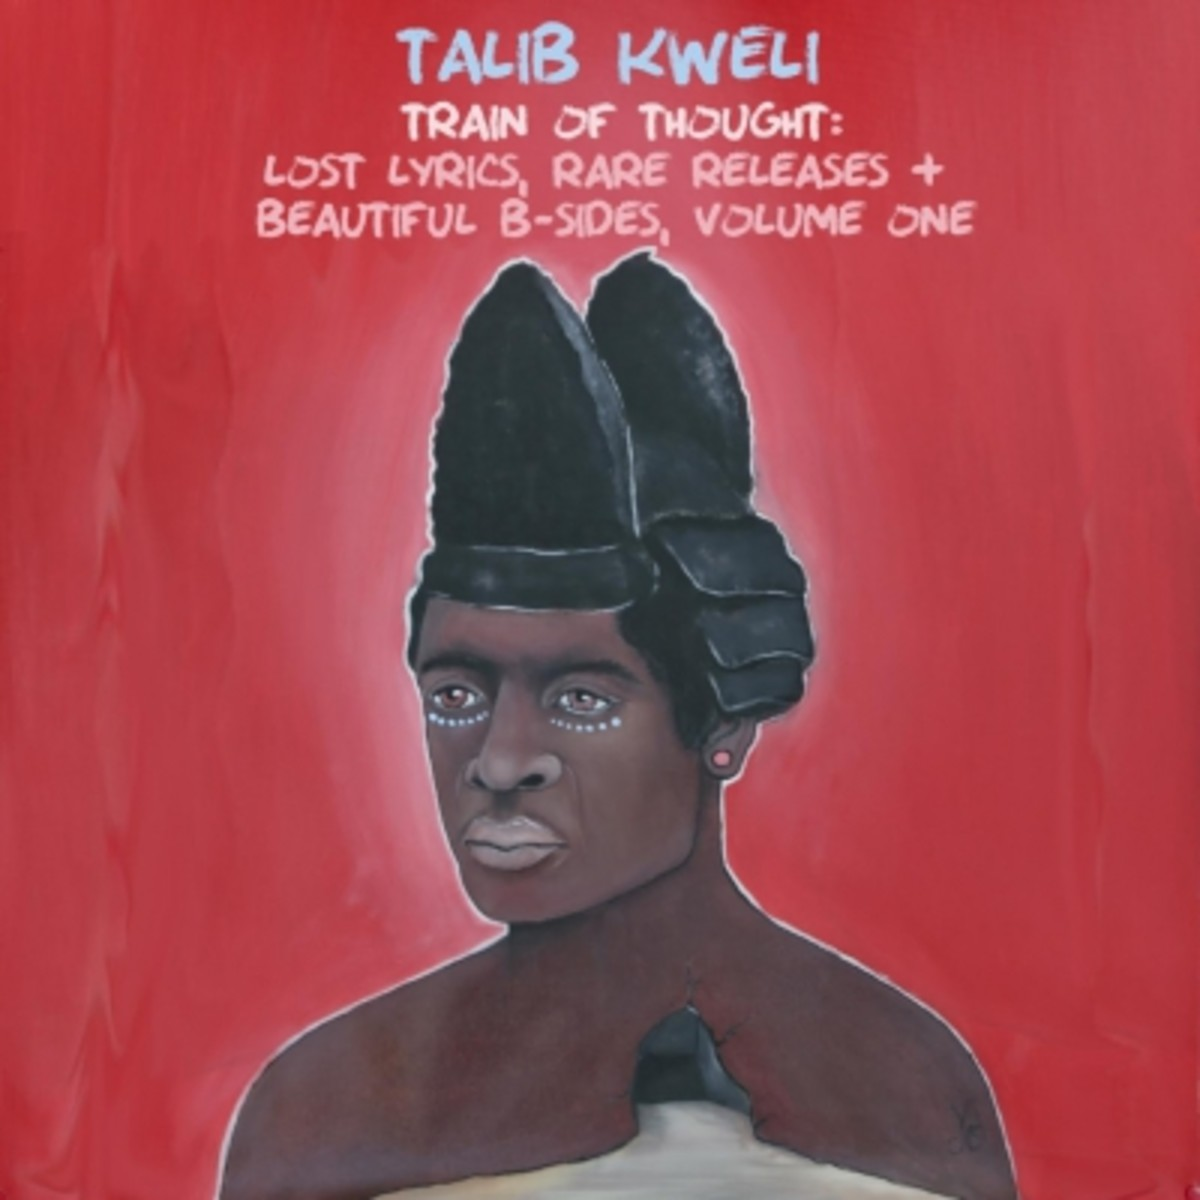 talib-kweli-train-of-thought.jpg